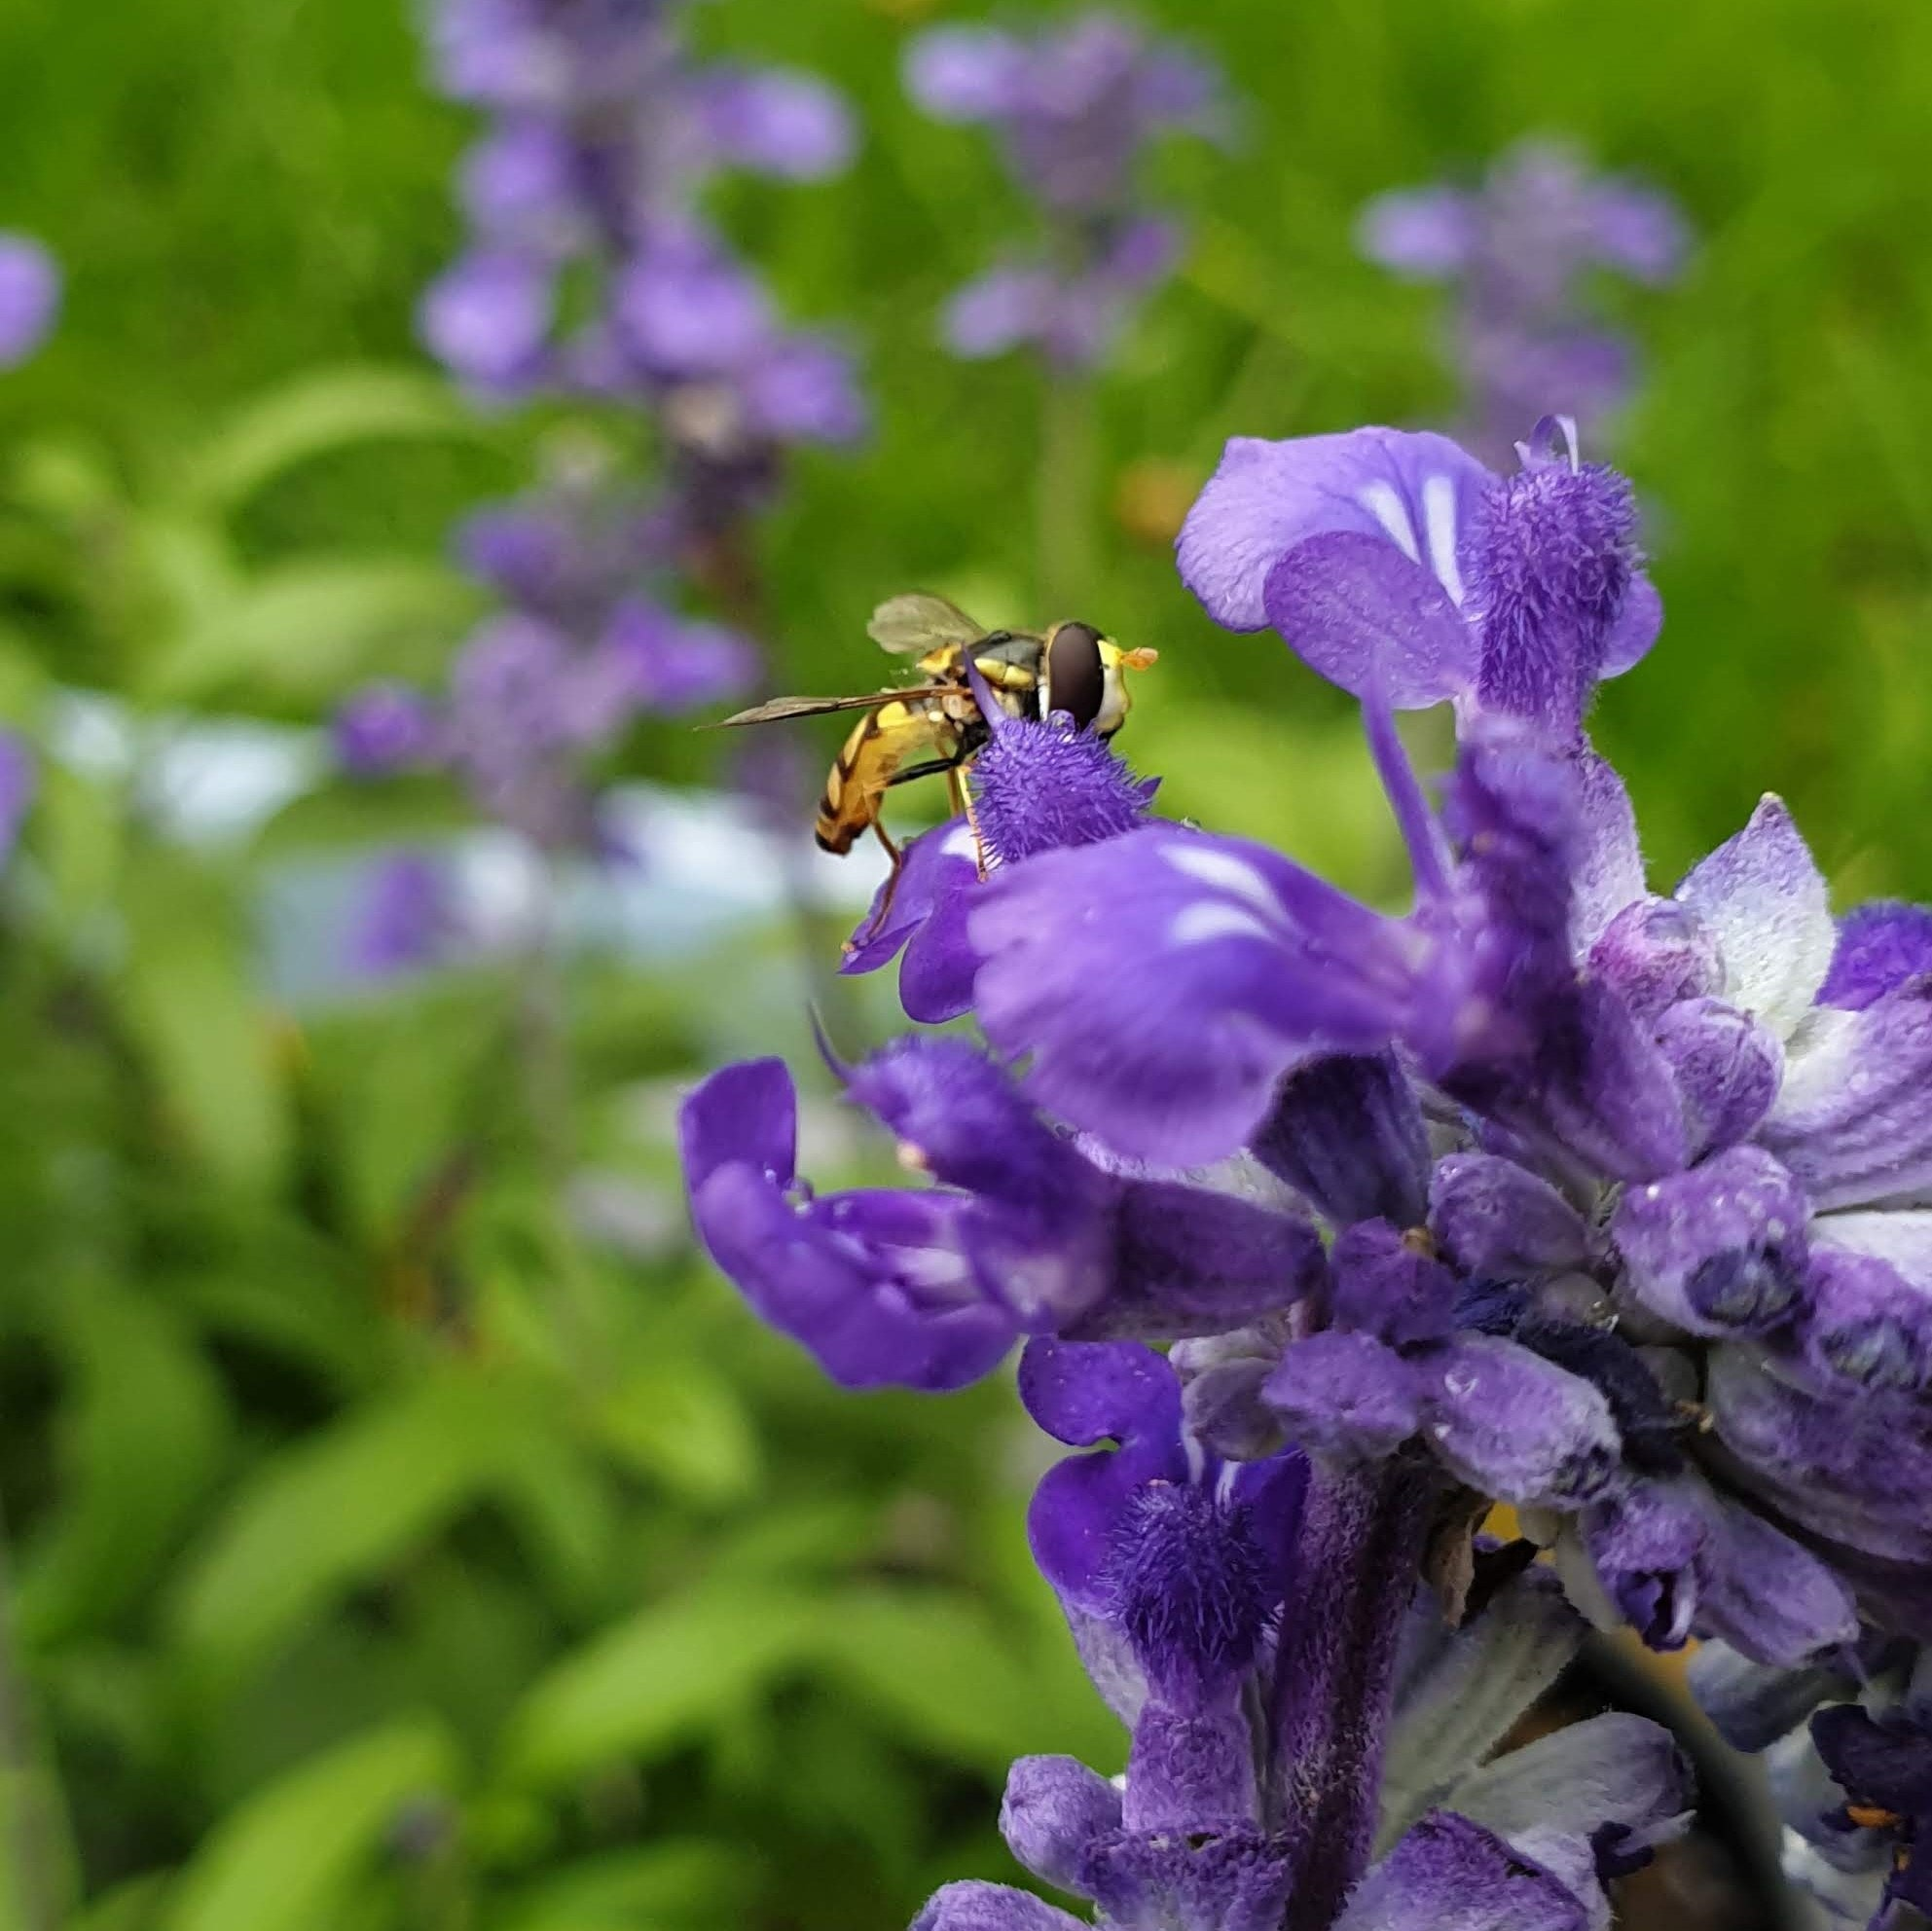 A hoverfly